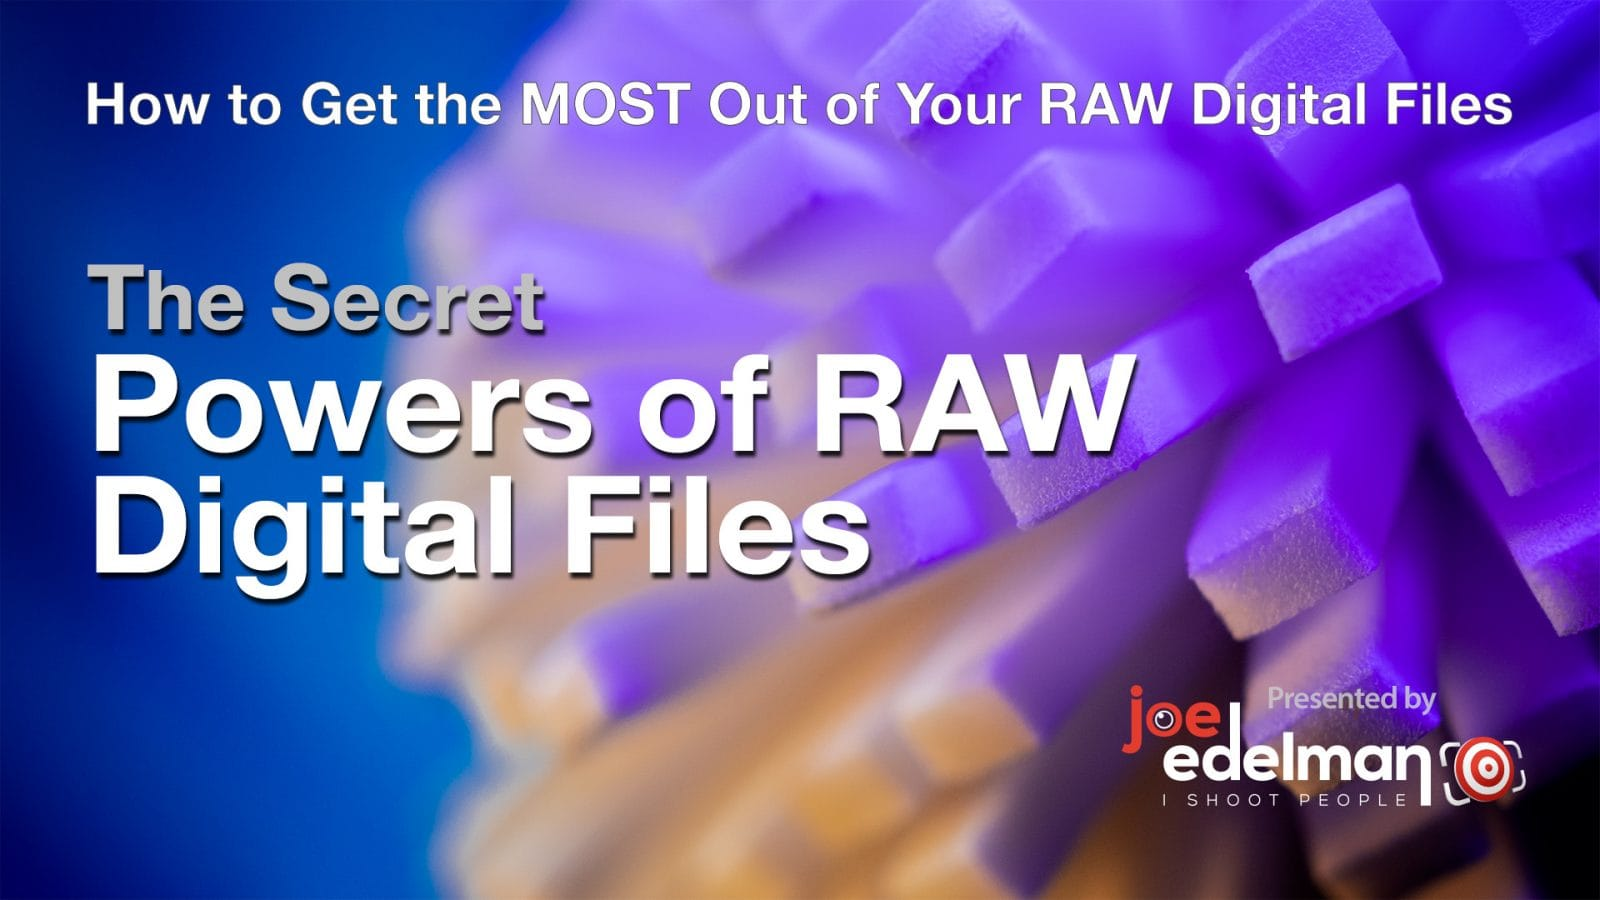 The Secret Powers of RAW Files